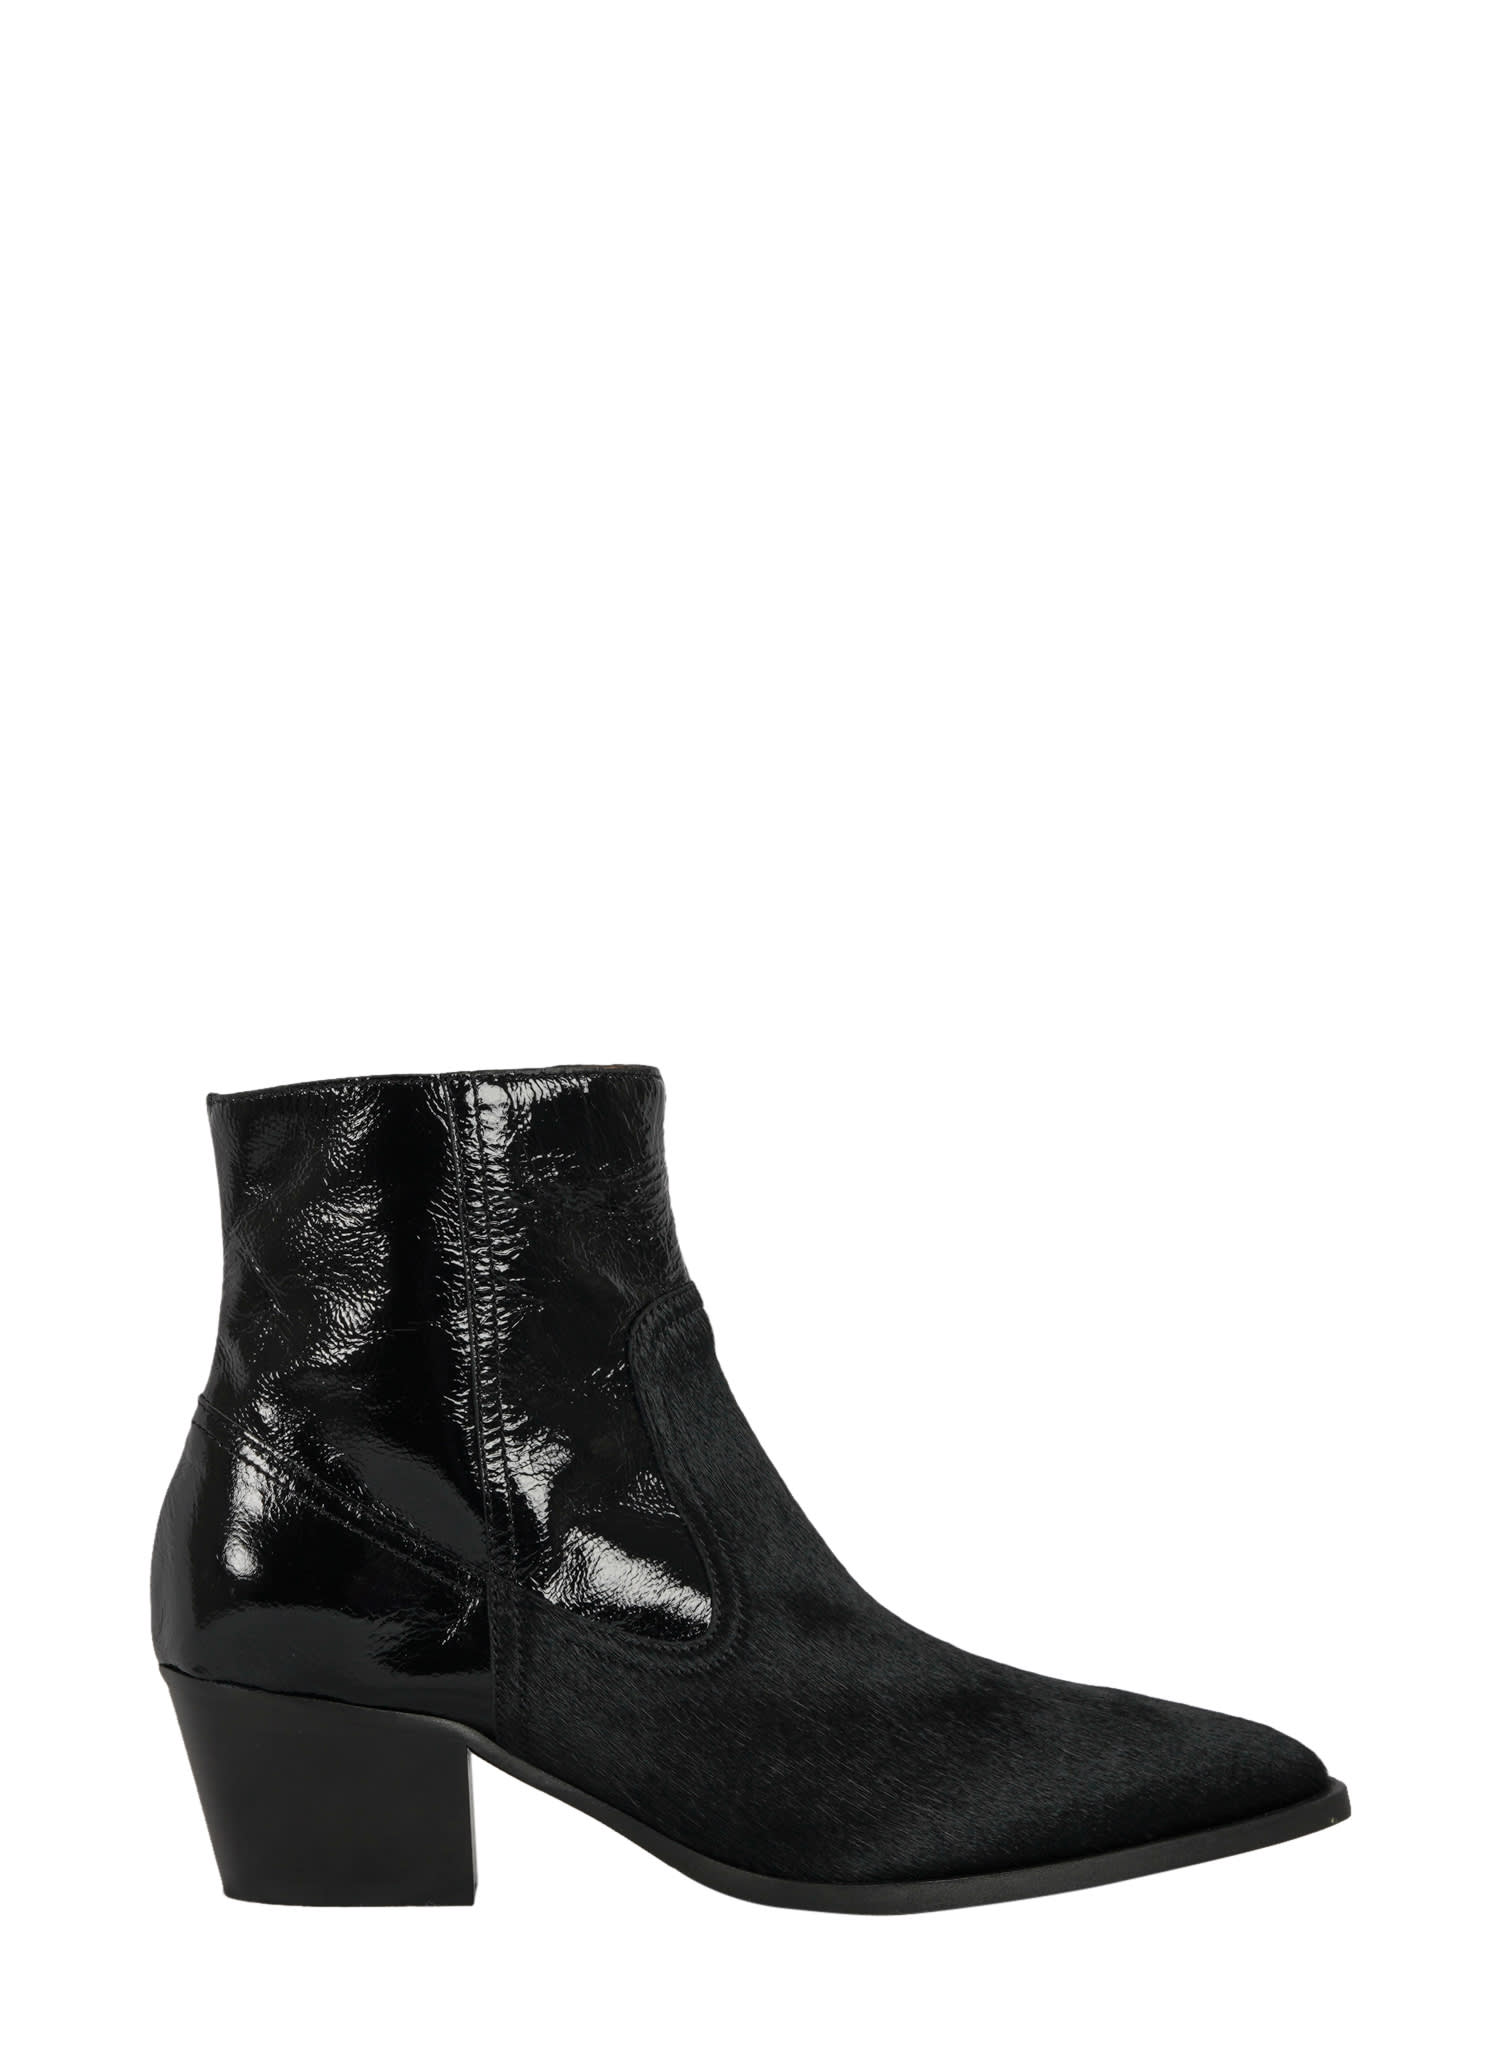 Tronchetto Sporty Boots